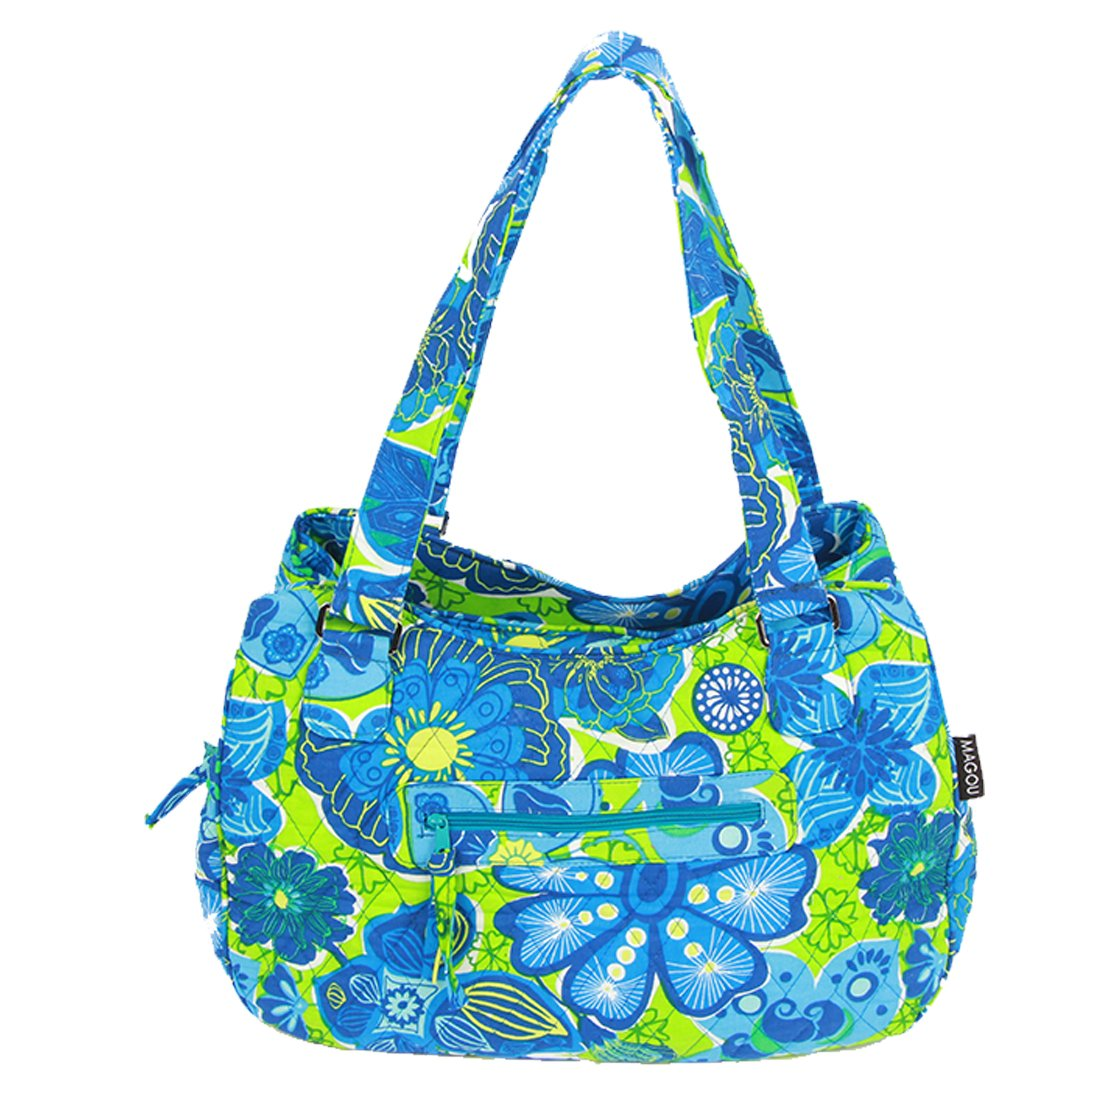 MAGOU Quilted Cotton Handle Bags Shoulder Bag (Green-Blue) by MAGOU